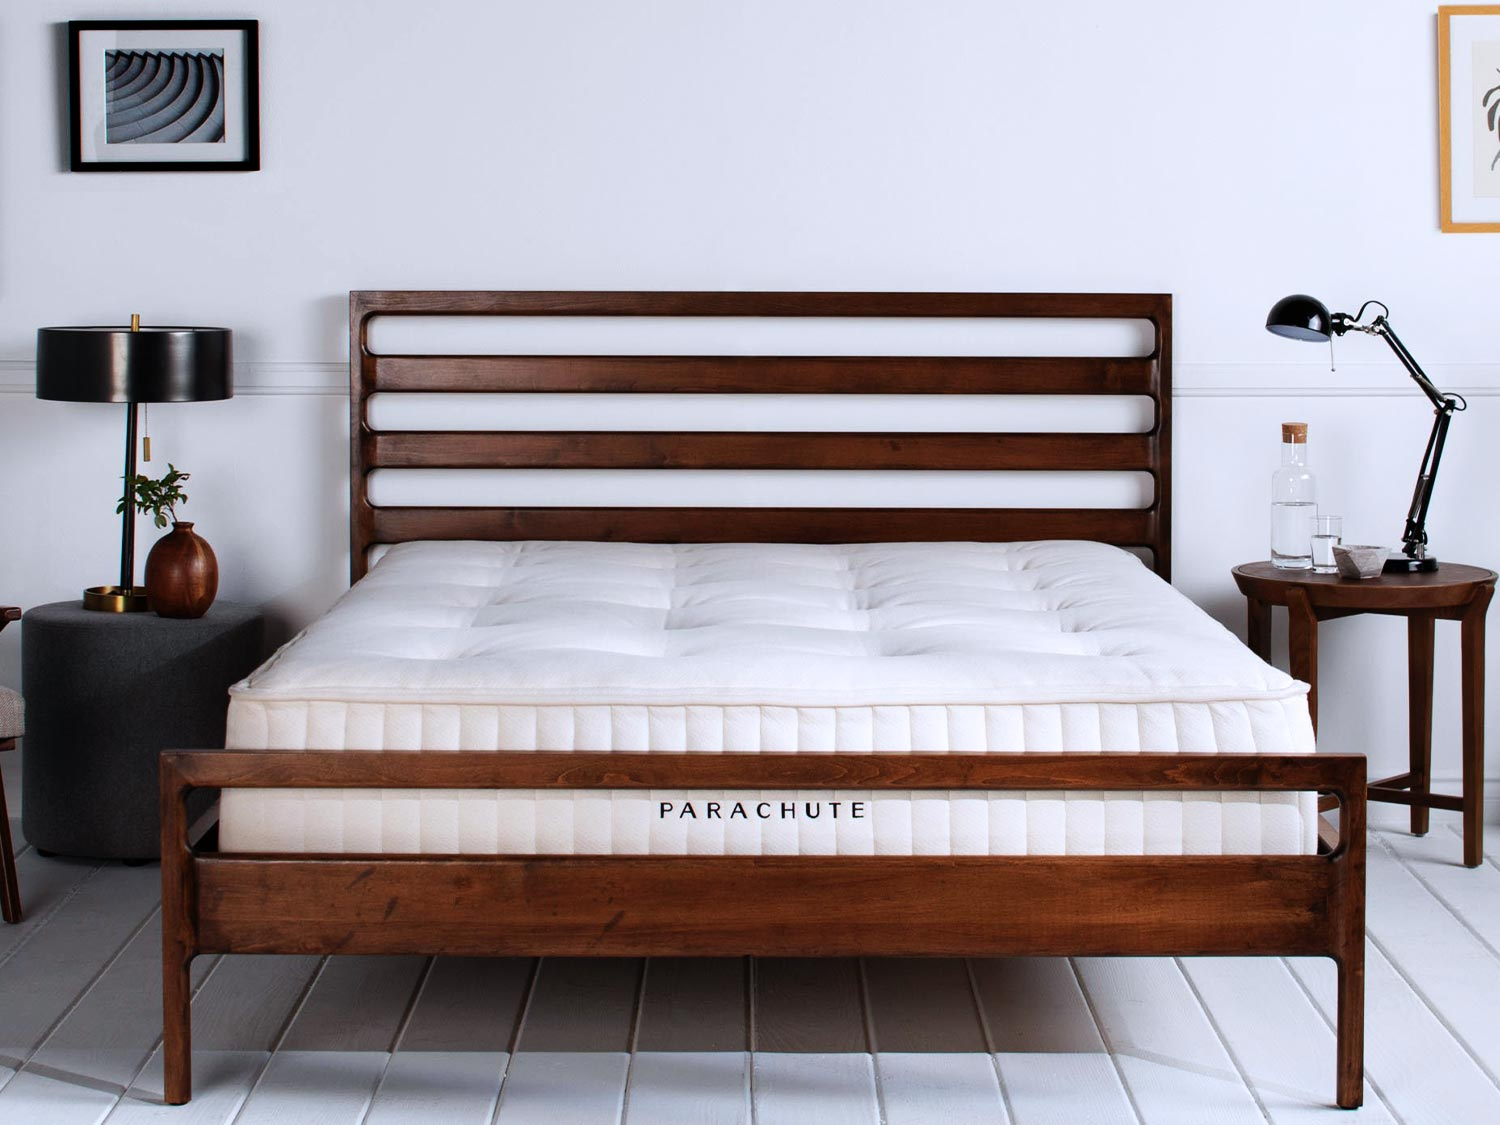 THE PARACHUTE MATTRESS WITH WOOD BED FRAME -  SEE OUR MATTRESS  REVIEW